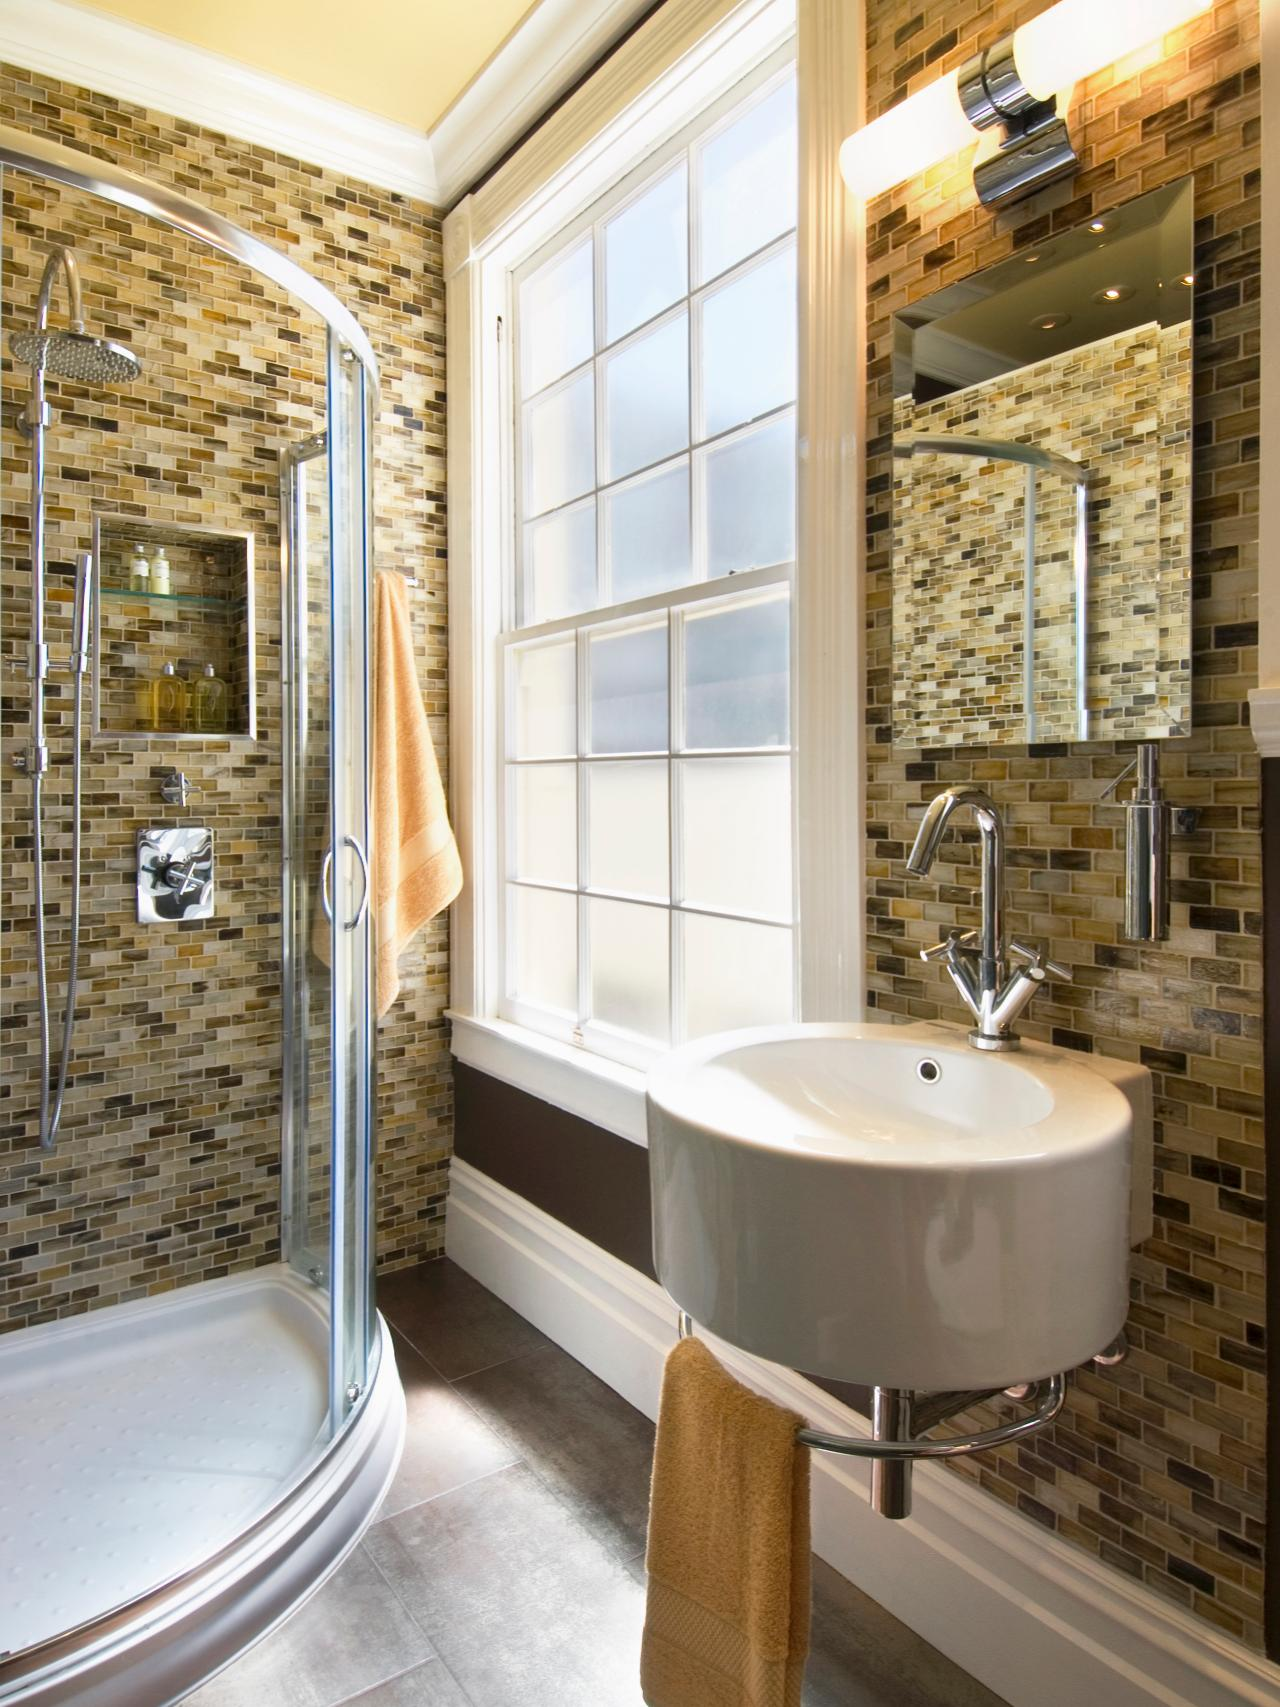 Small bathrooms big design hgtv for Hgtv small bathroom design ideas